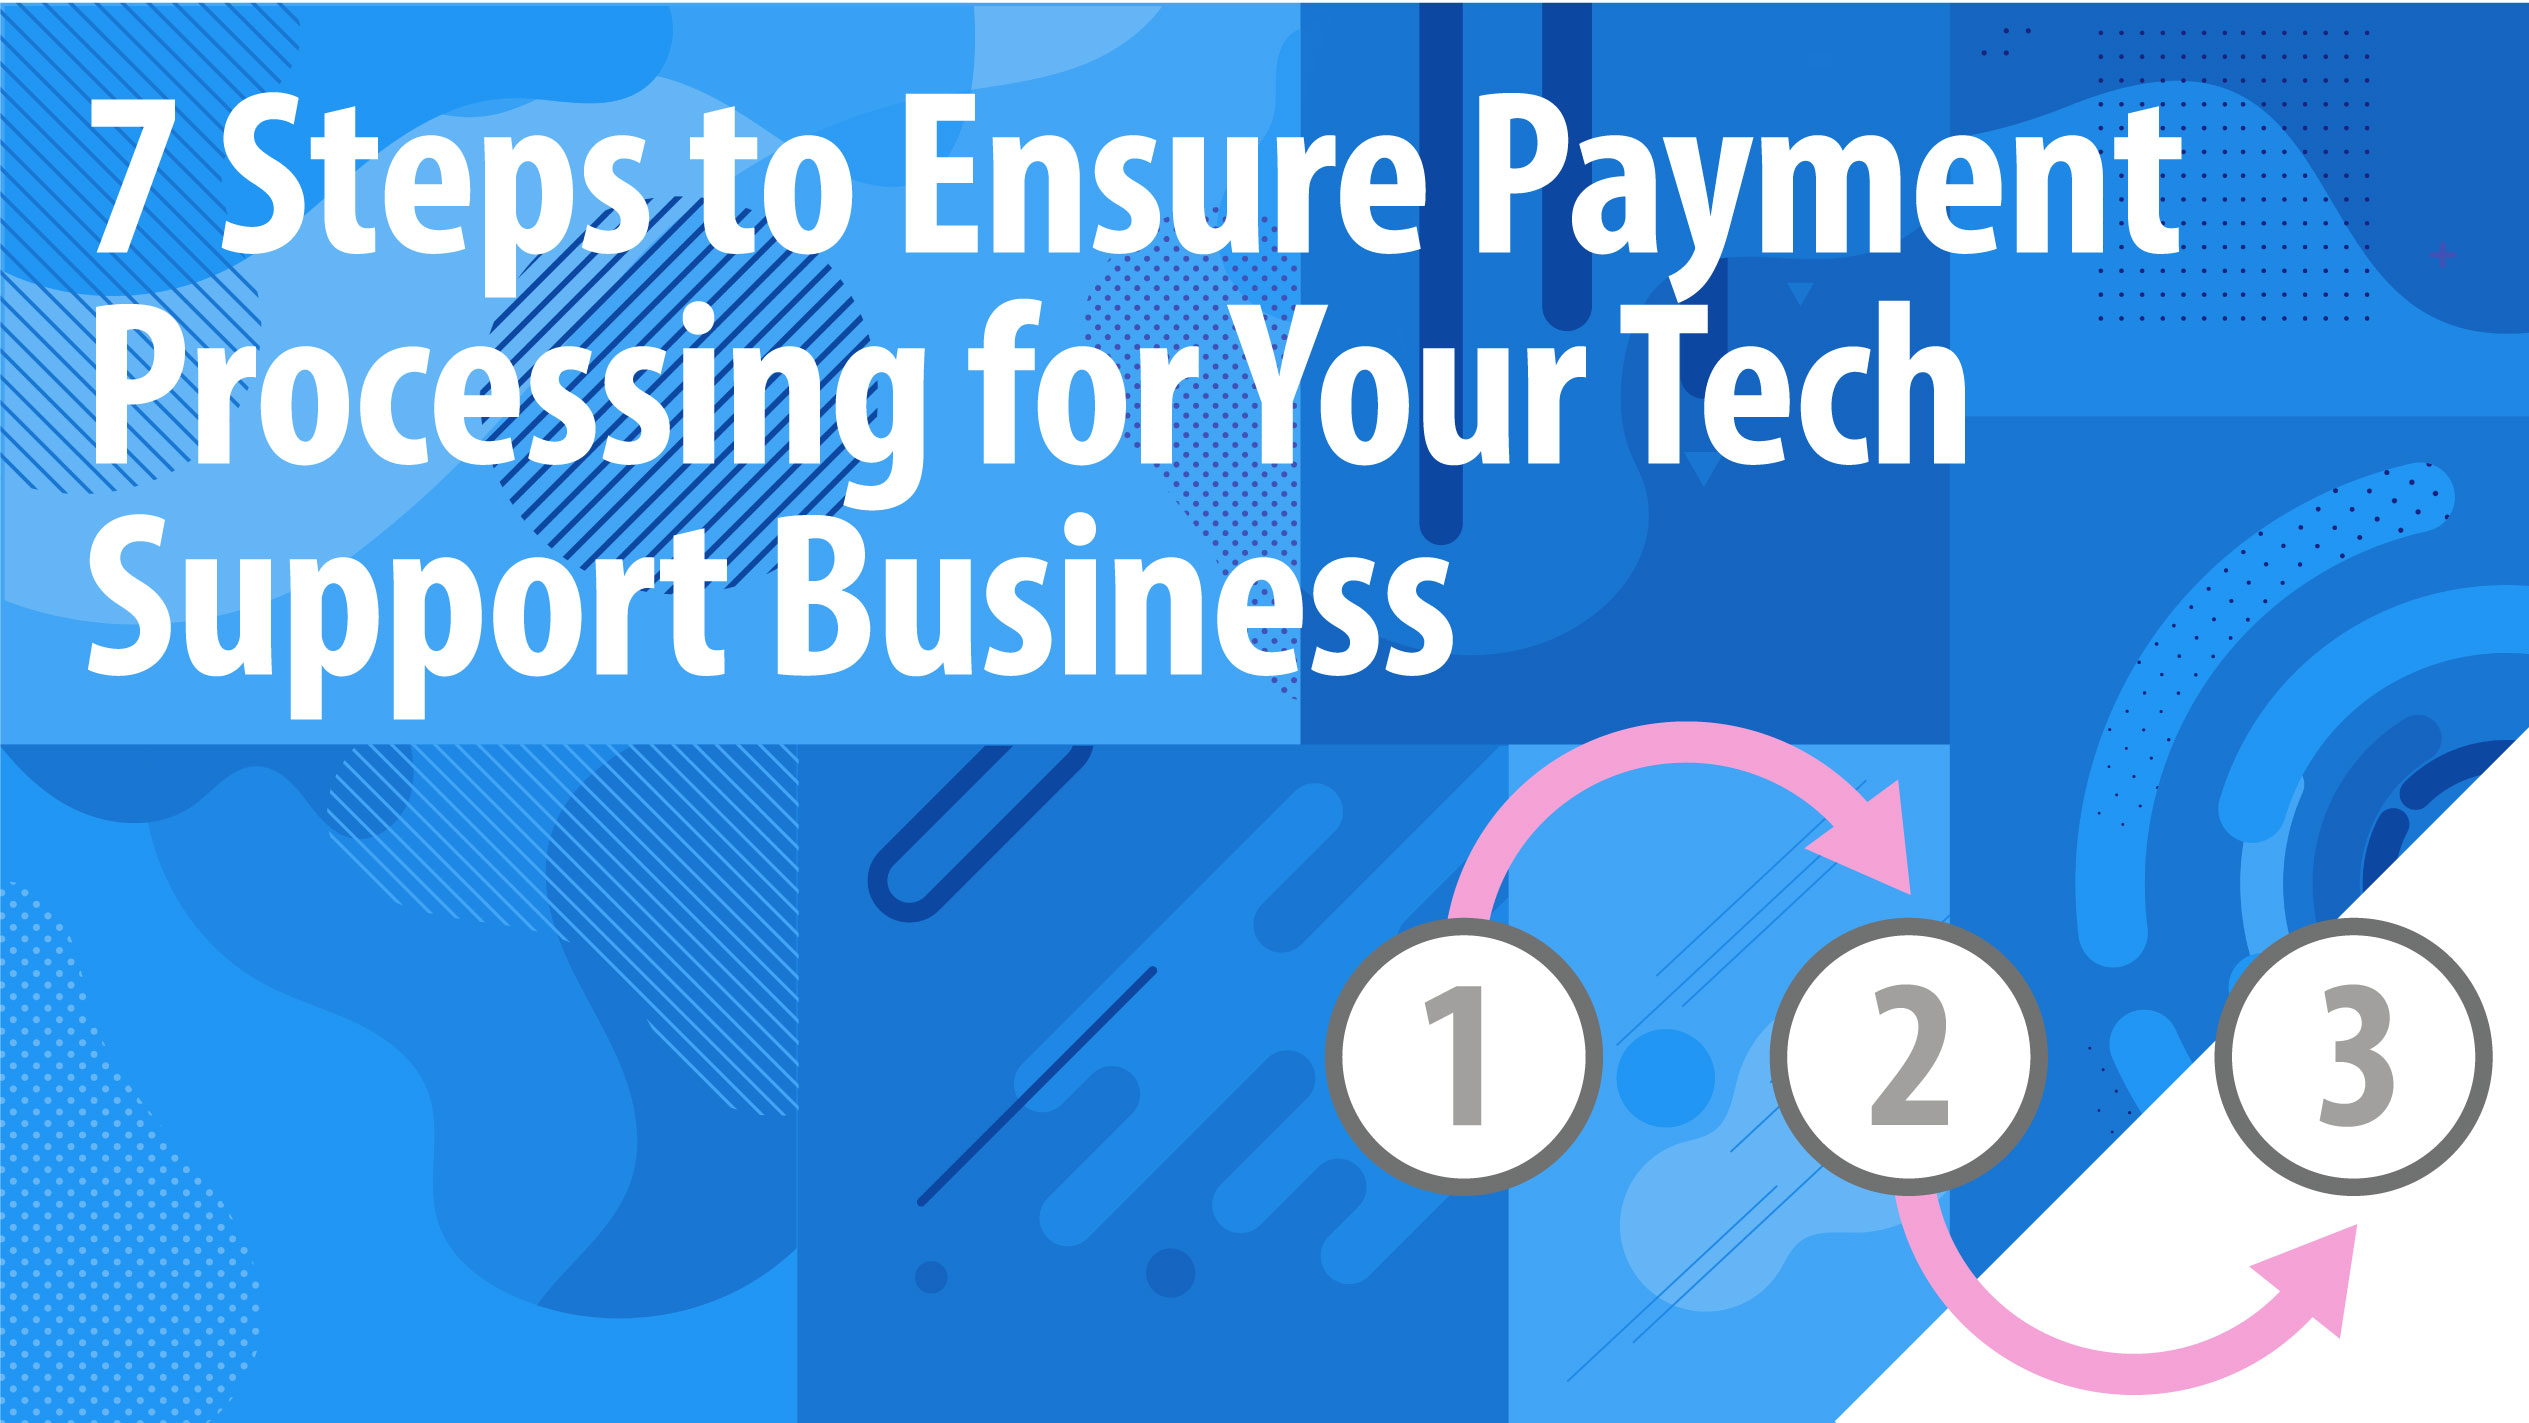 7 Steps to Ensure Payment Processing for Your Tech Support Business